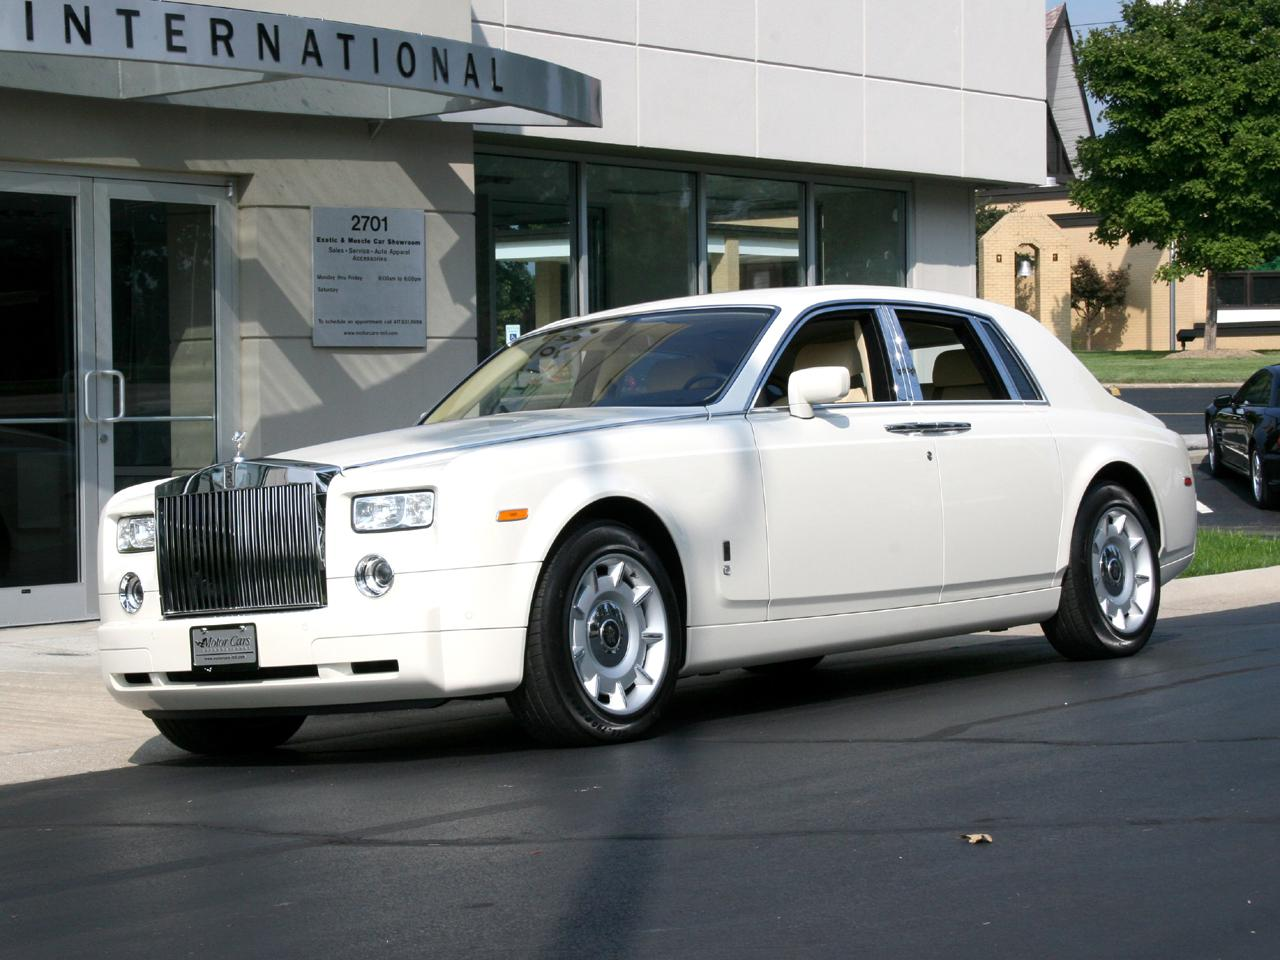 2004 Rolls royce Phantom #4